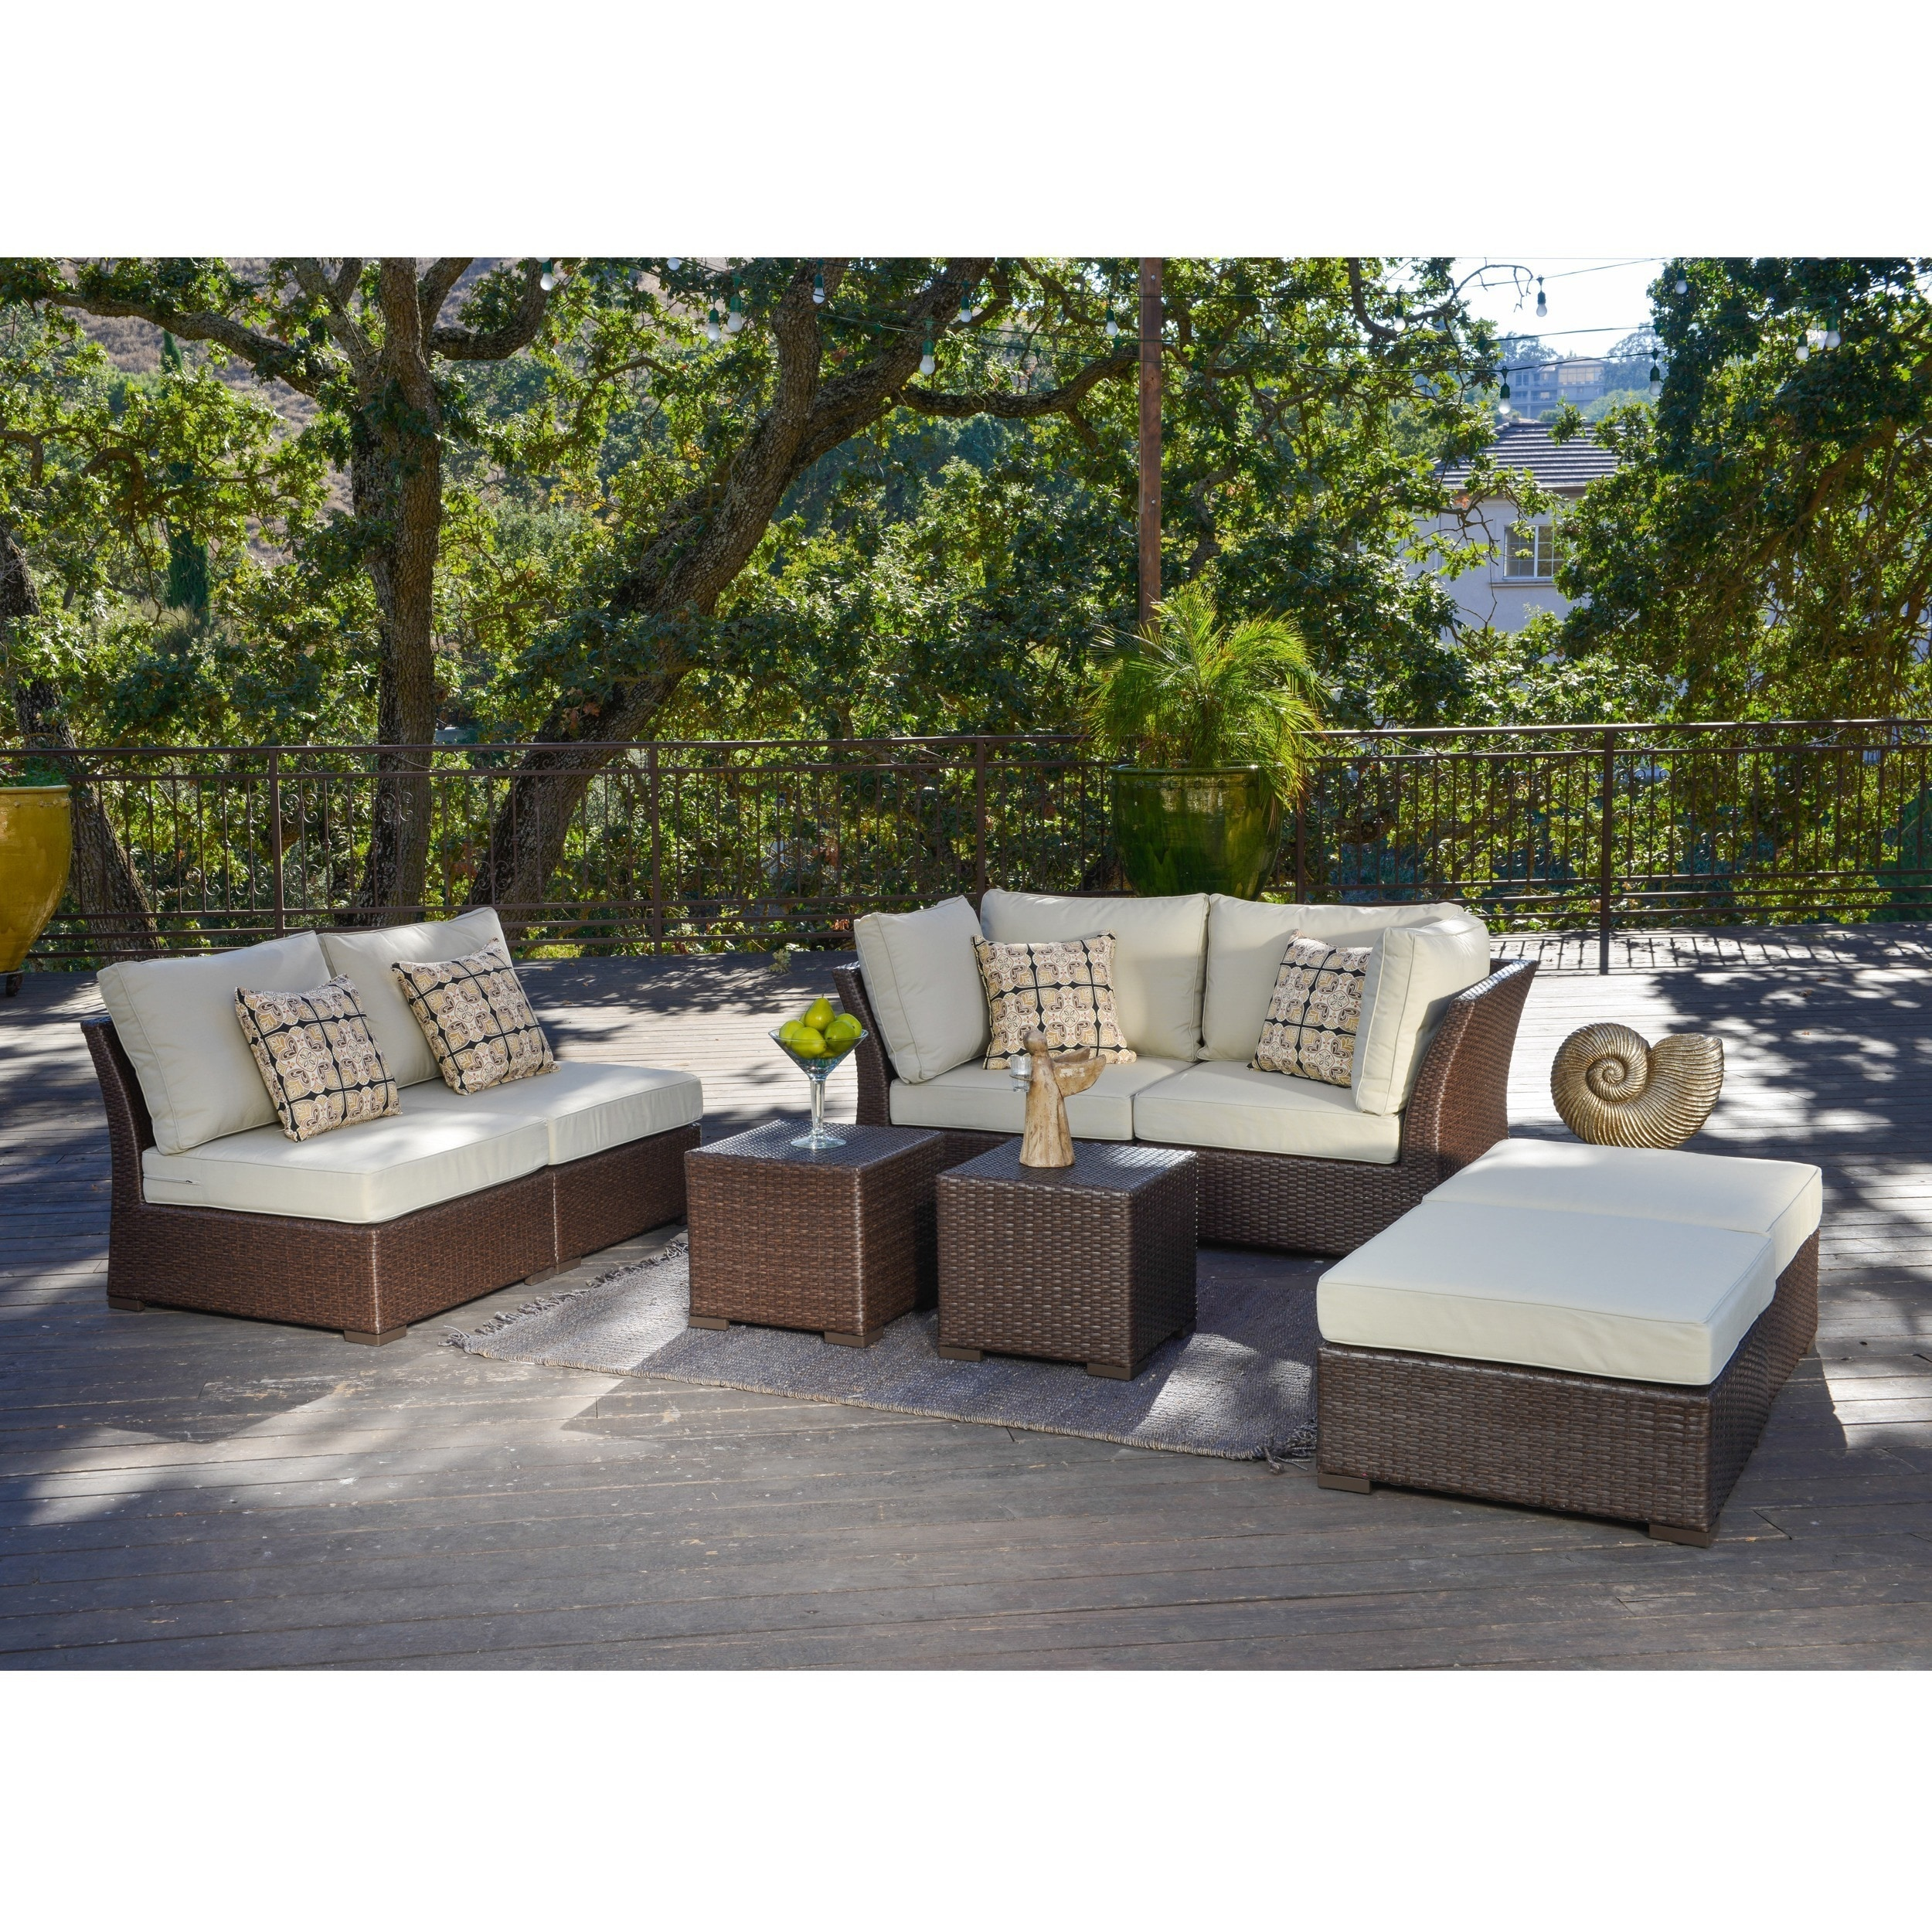 conversation costco size round full with wicker swivel outdoor of sunbrella chairs sunroom curved sets stylish patios sectional patio furniture